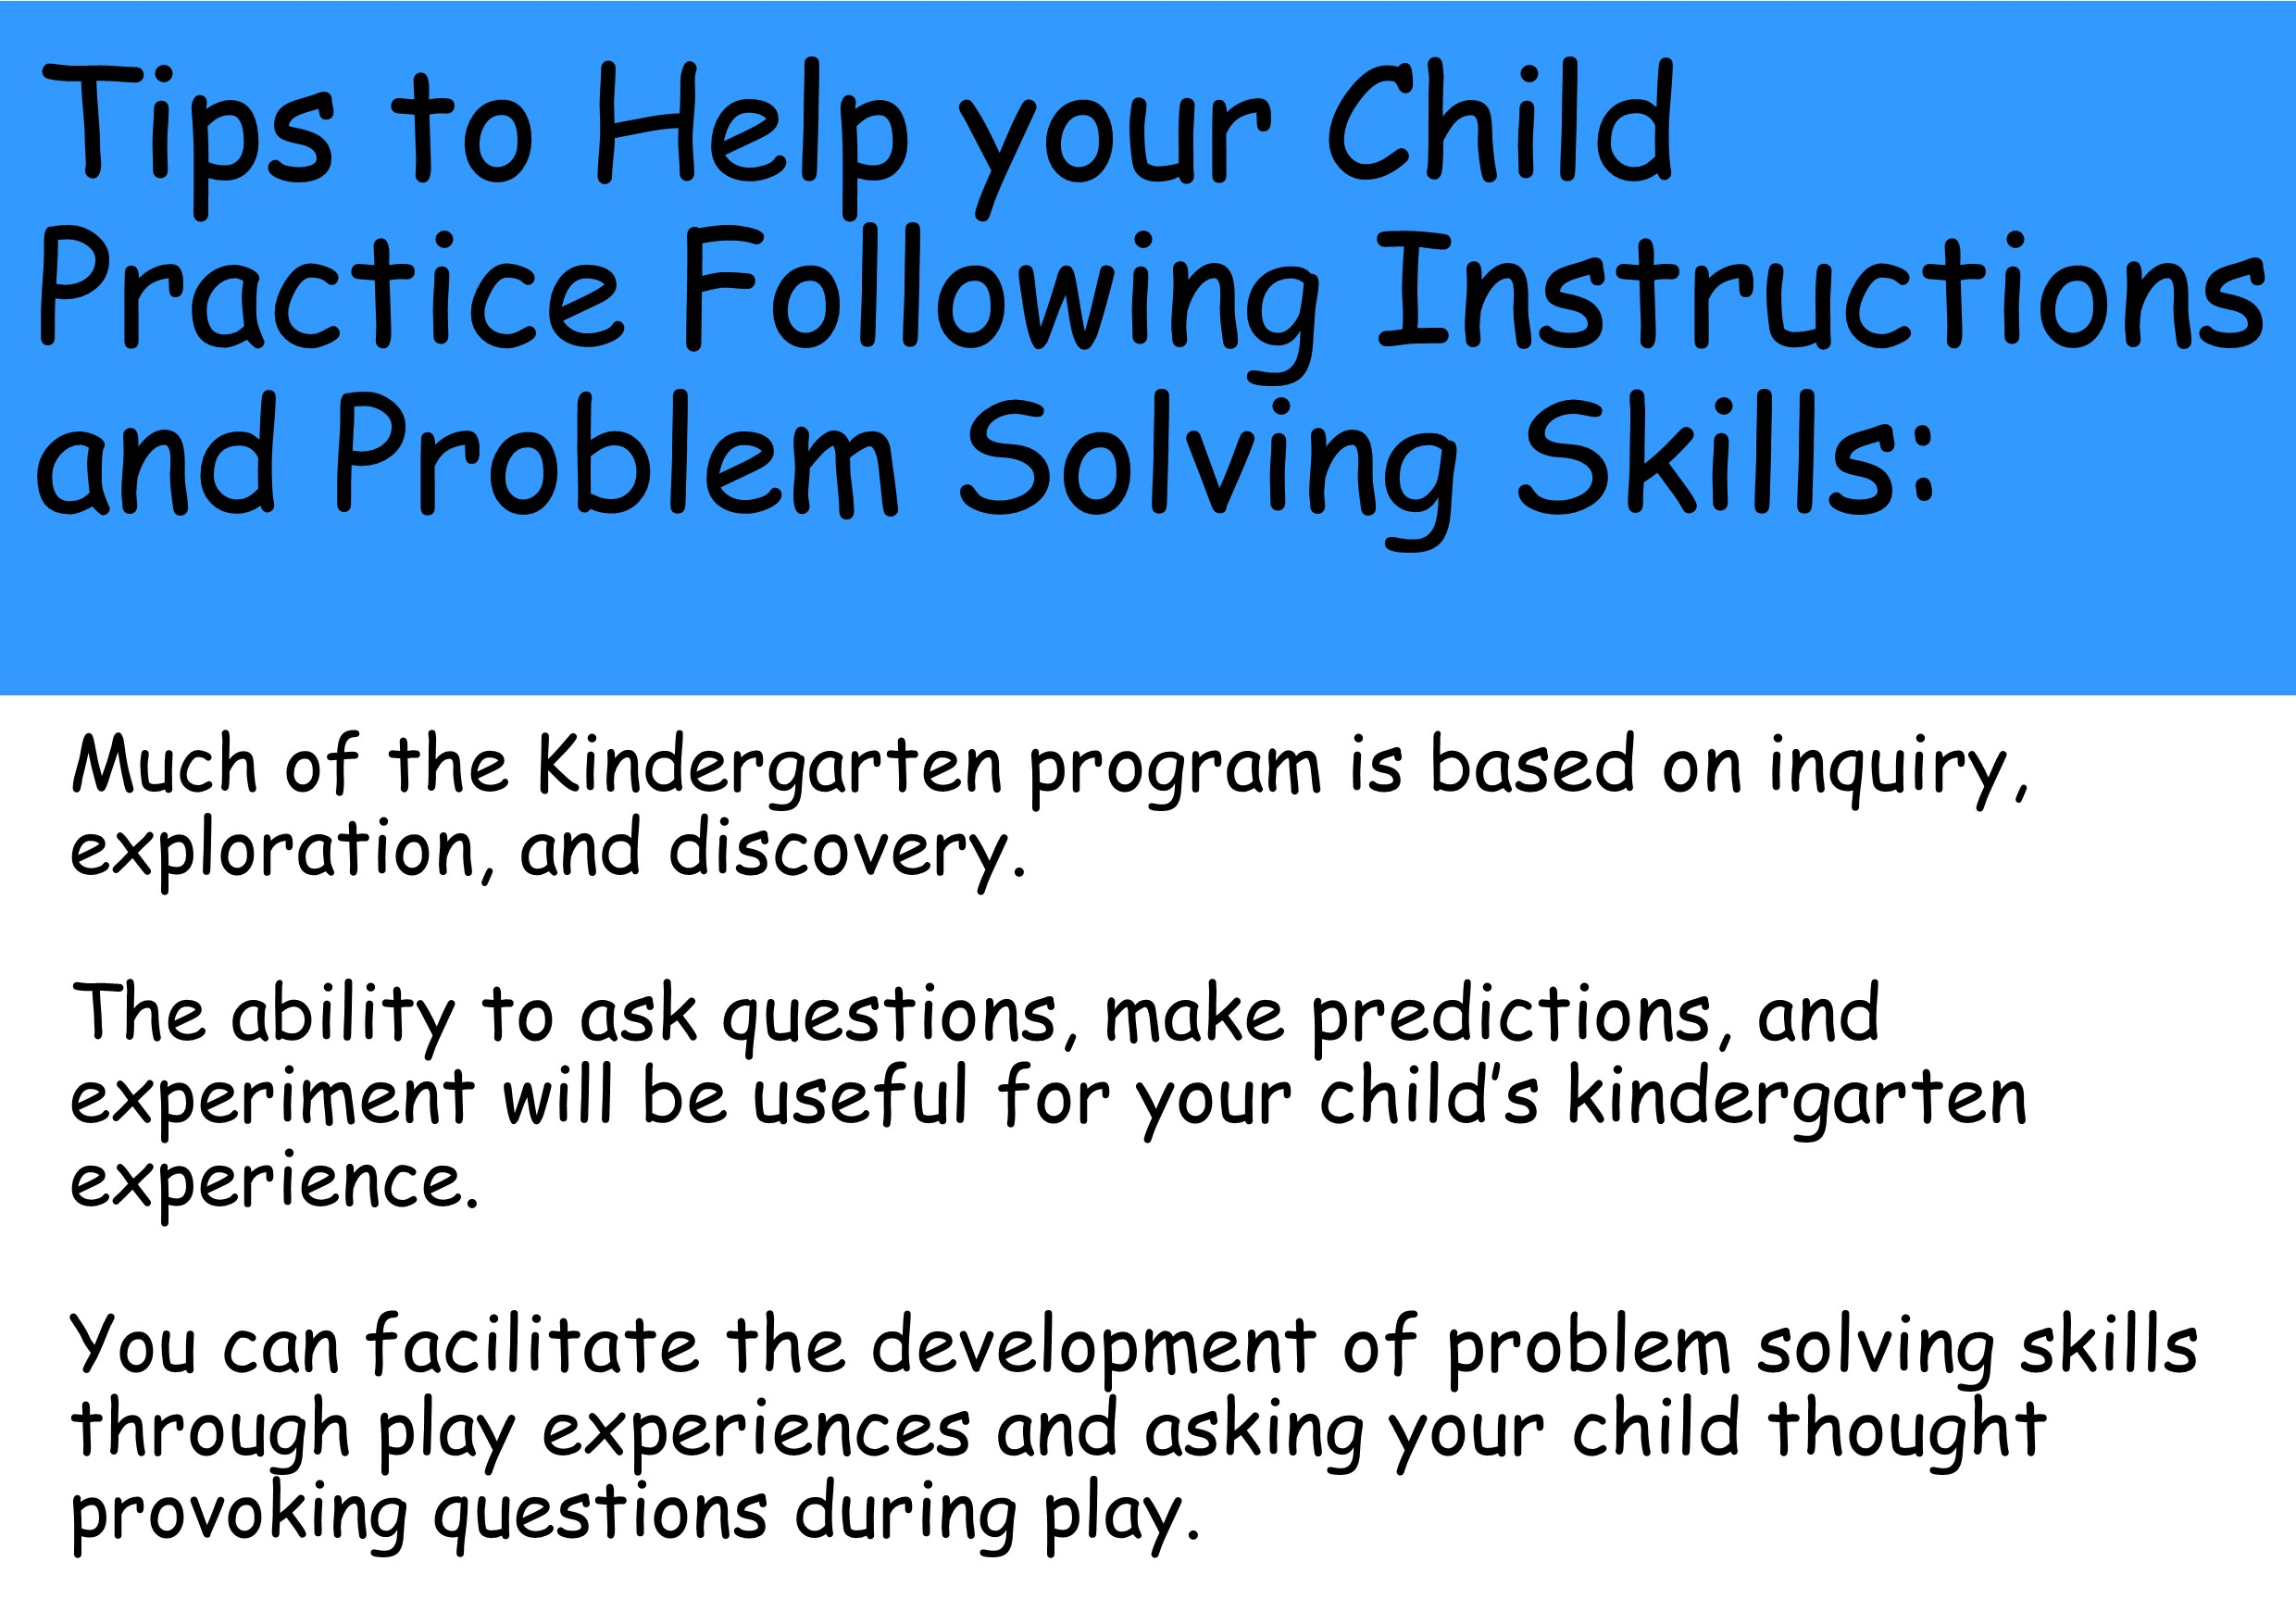 Tips to help your child practice following instructions and problem solving skills